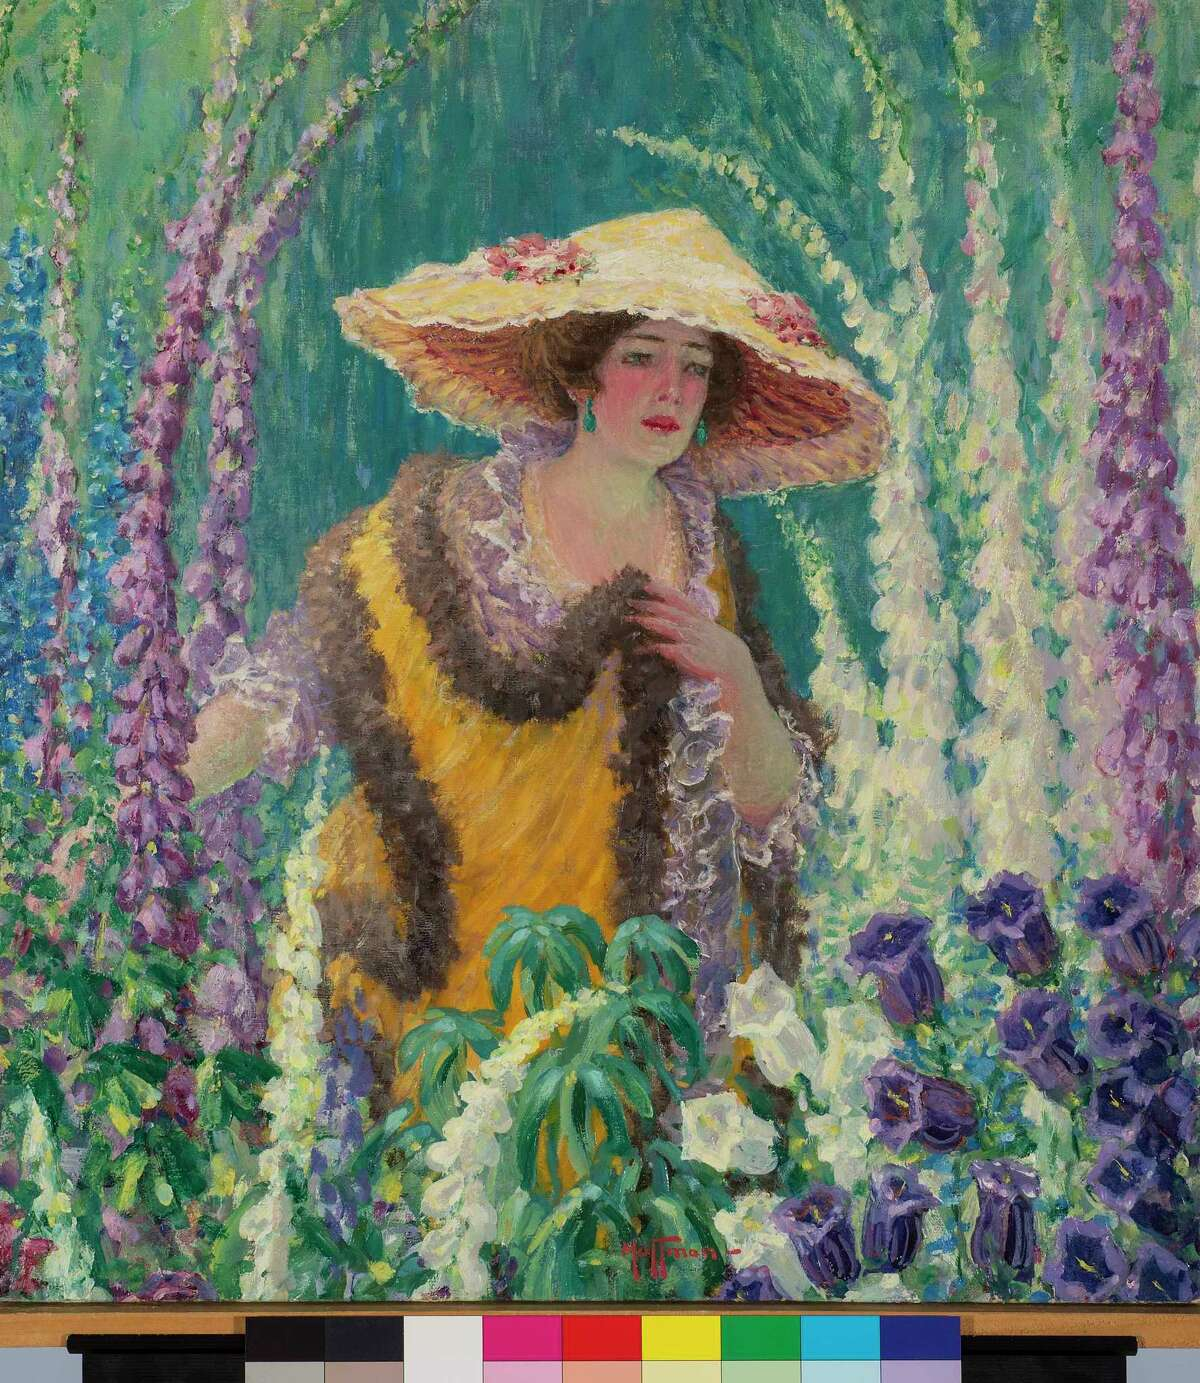 """IMPRESSIONS: Harry Hoffman's """"An Old-Fashioned Garden,"""" ca. 1920, is part of the Florence Griswold Museum's exhibit """"Fresh Fields: American Impressionist Landscapes from the Florence Griswold Museum,"""" available through Nov. 1 at the 96 Lyme St., Old Lyme museum."""